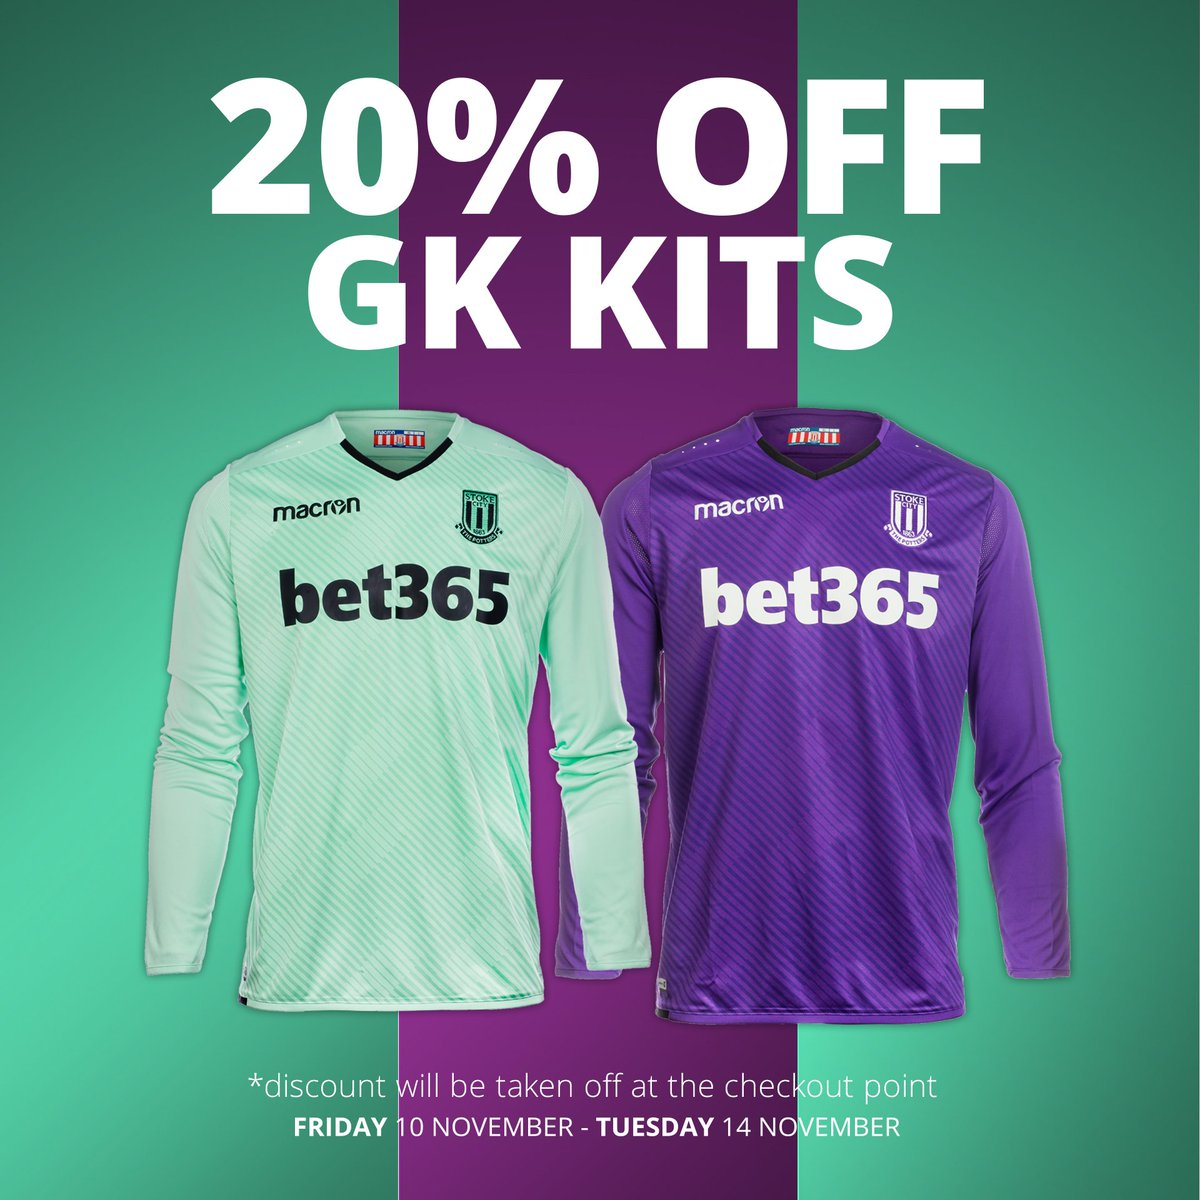 c182585833d There is still time to get 20% off a new 2017/18 Official goalkeeper kit.  Offer ends tomorrow. Visit https://store.stokecityfc.com/kit/goalkeeper and  get ...